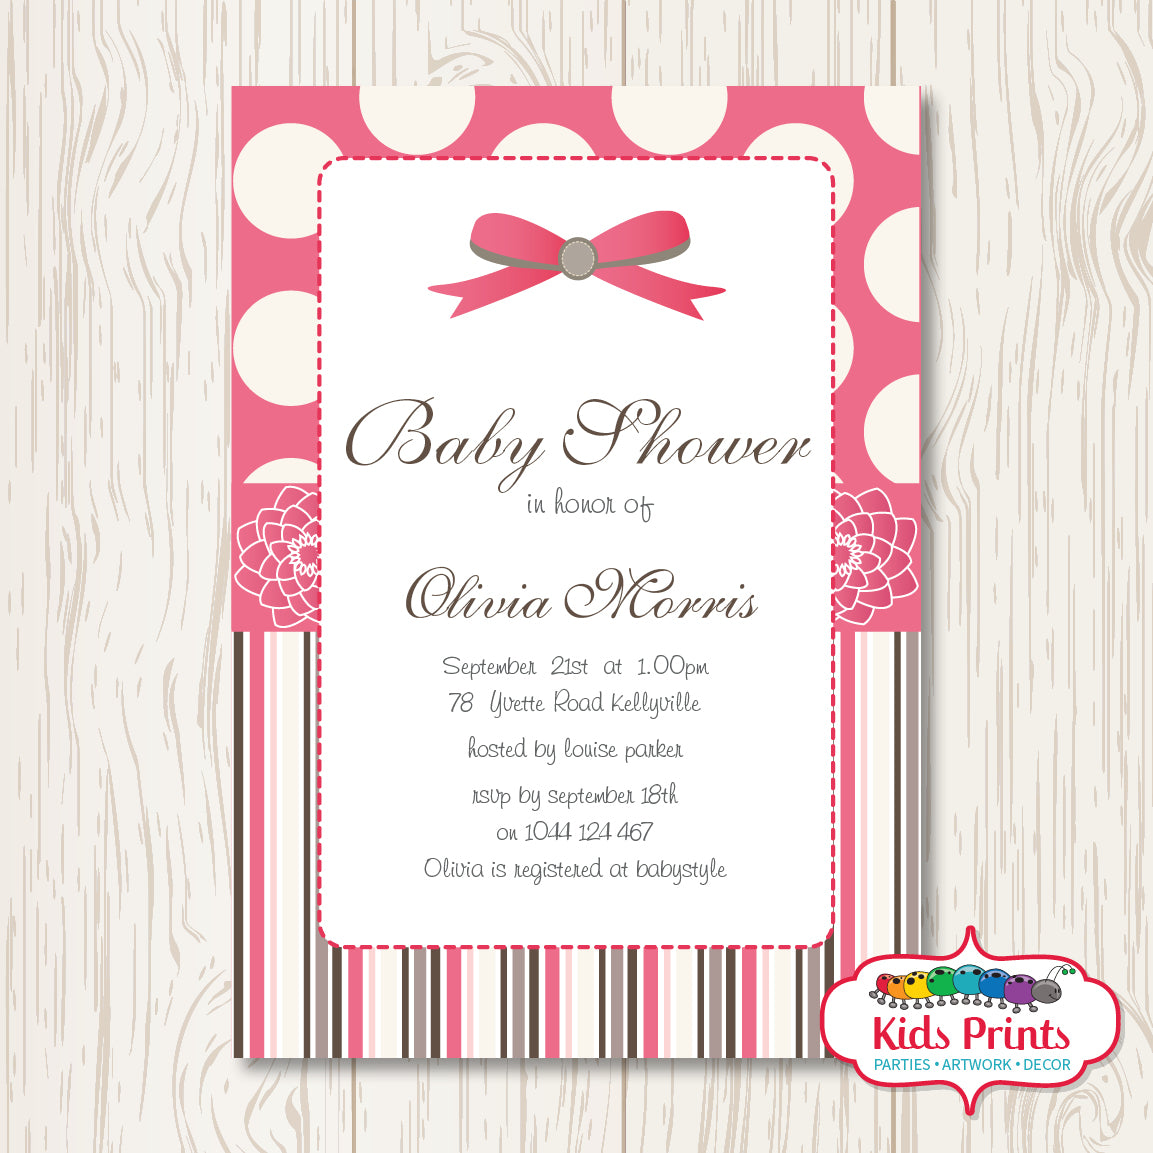 Pink Bow | Printable Baby Shower Invitation - Kids Prints Online